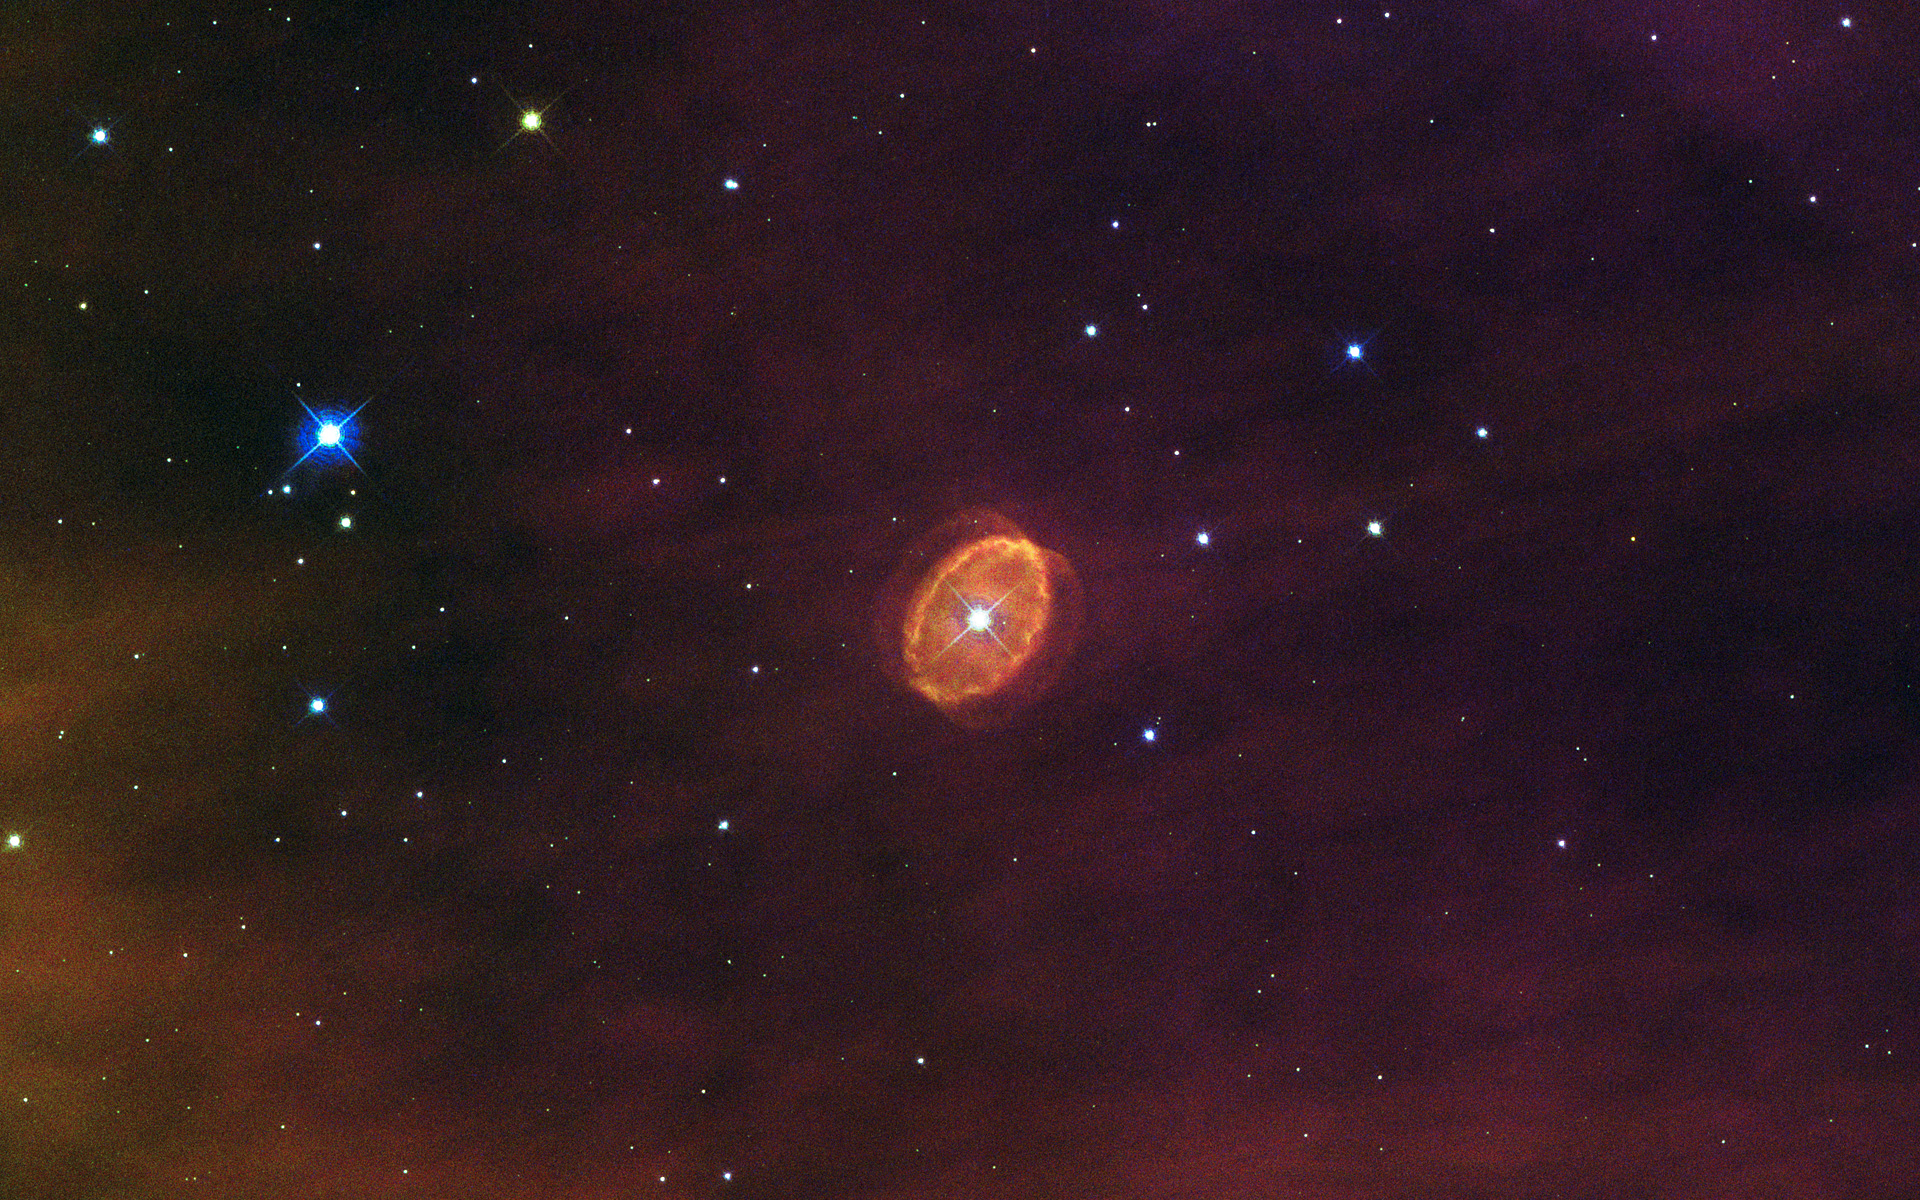 Hubble Telescope Sees Star That May Explode Soon (Photo)